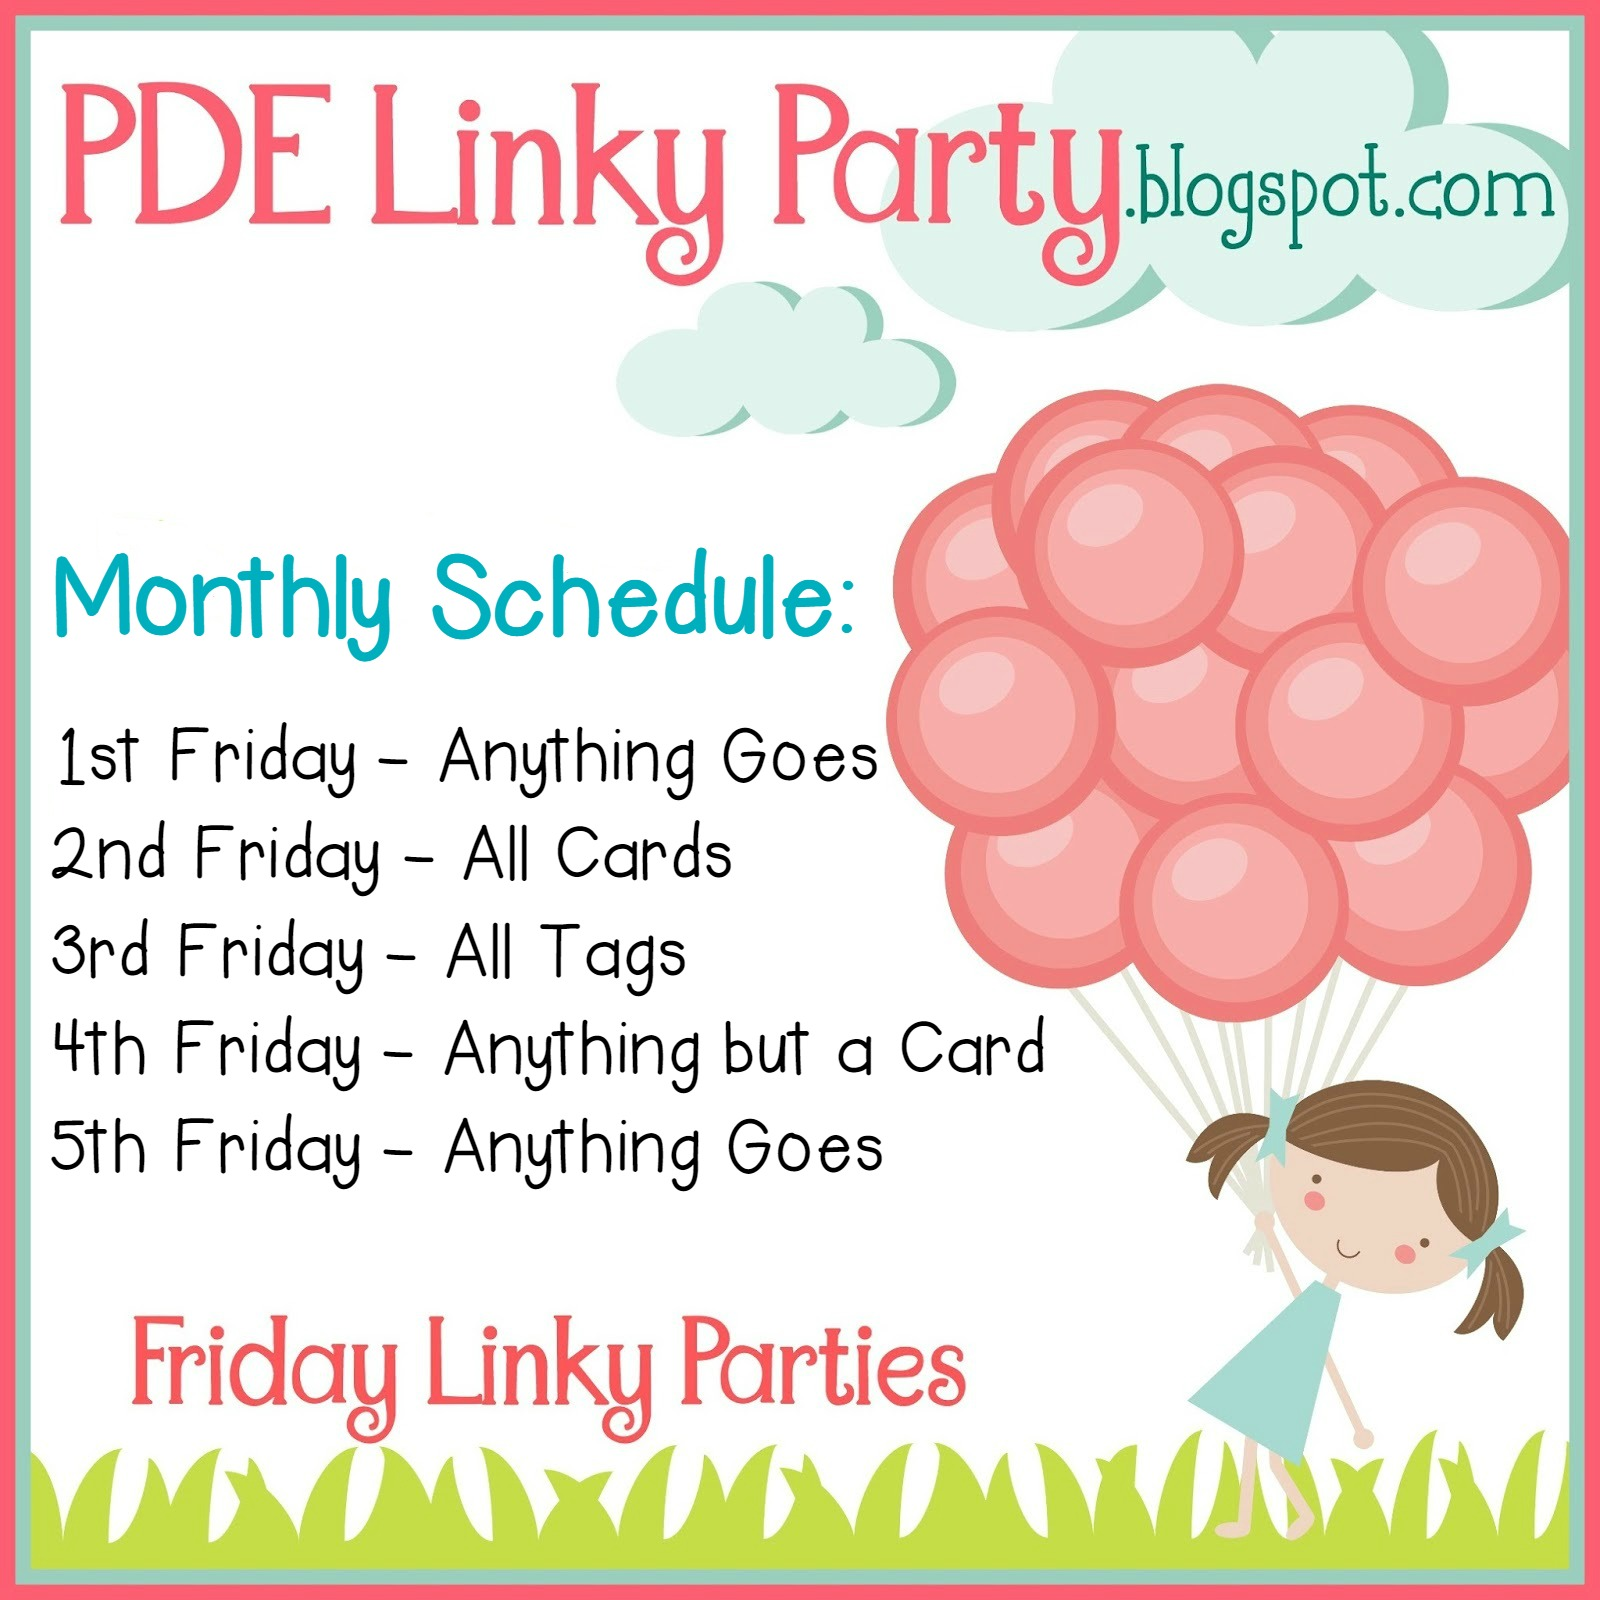 PDE Linky Party Schedule